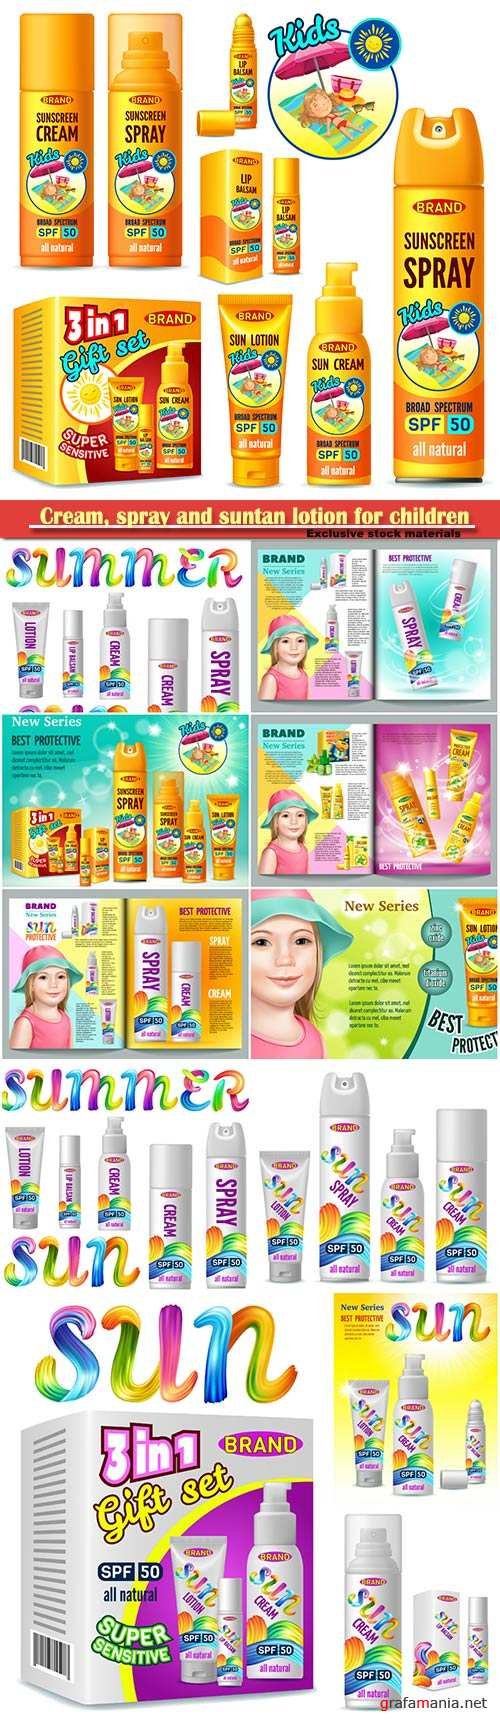 Cream, spray and suntan lotion for children